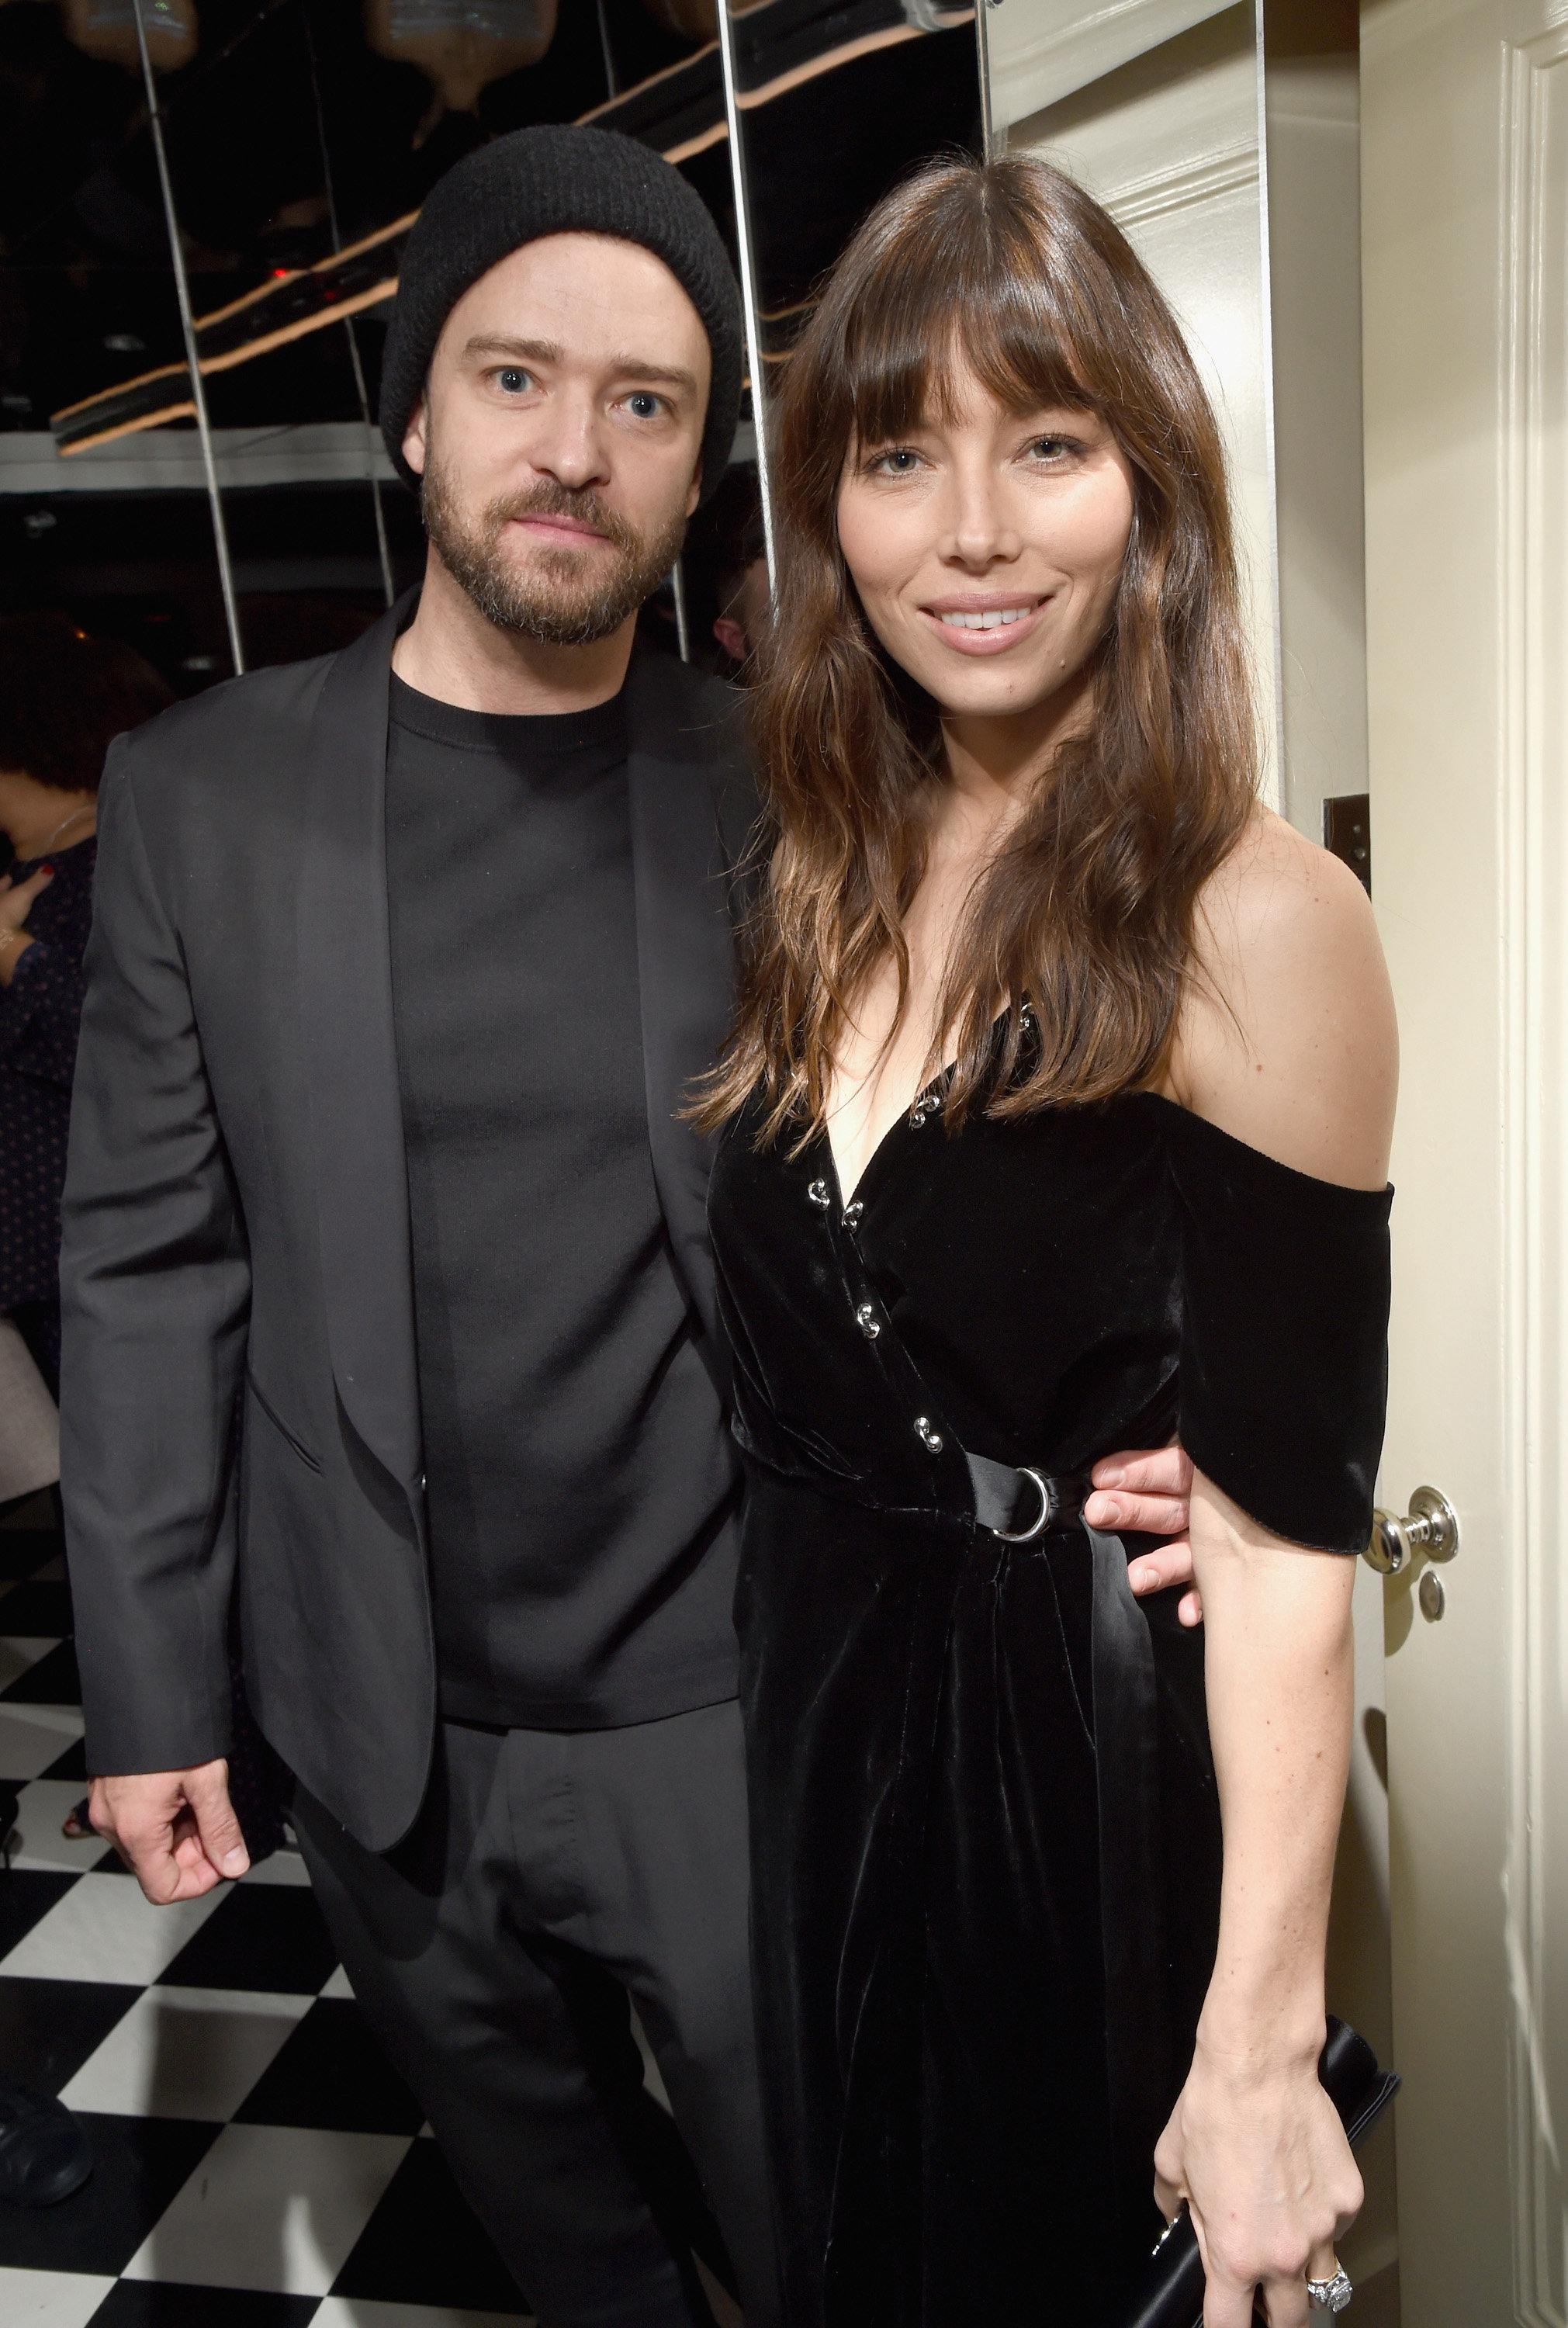 Justin Timberlake Is Leaving Flirty Comments on Jessica Biel's Instagram Posts @InStyle